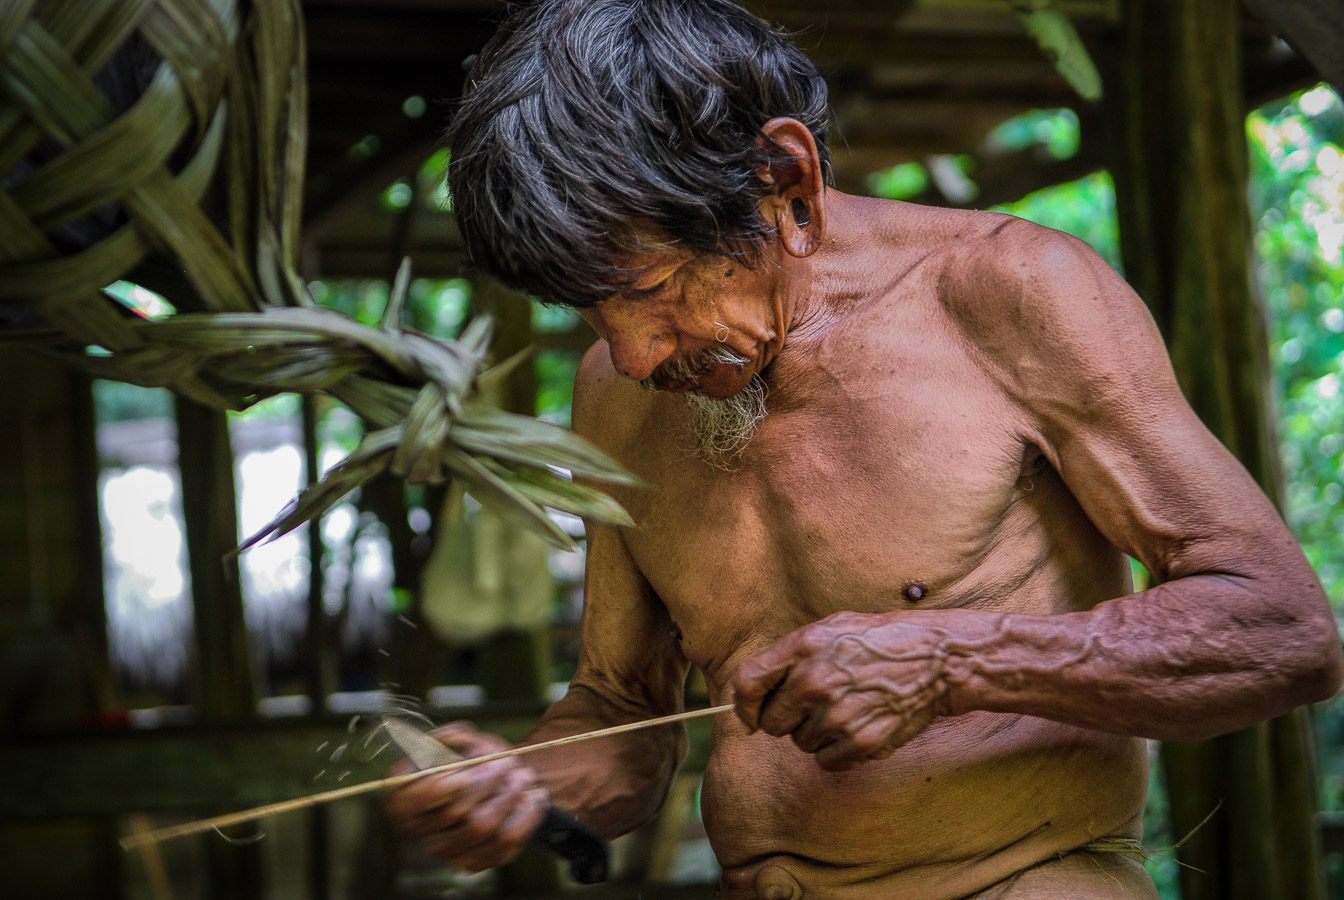 Huaorani Indian preparing arrows for his blowpipe